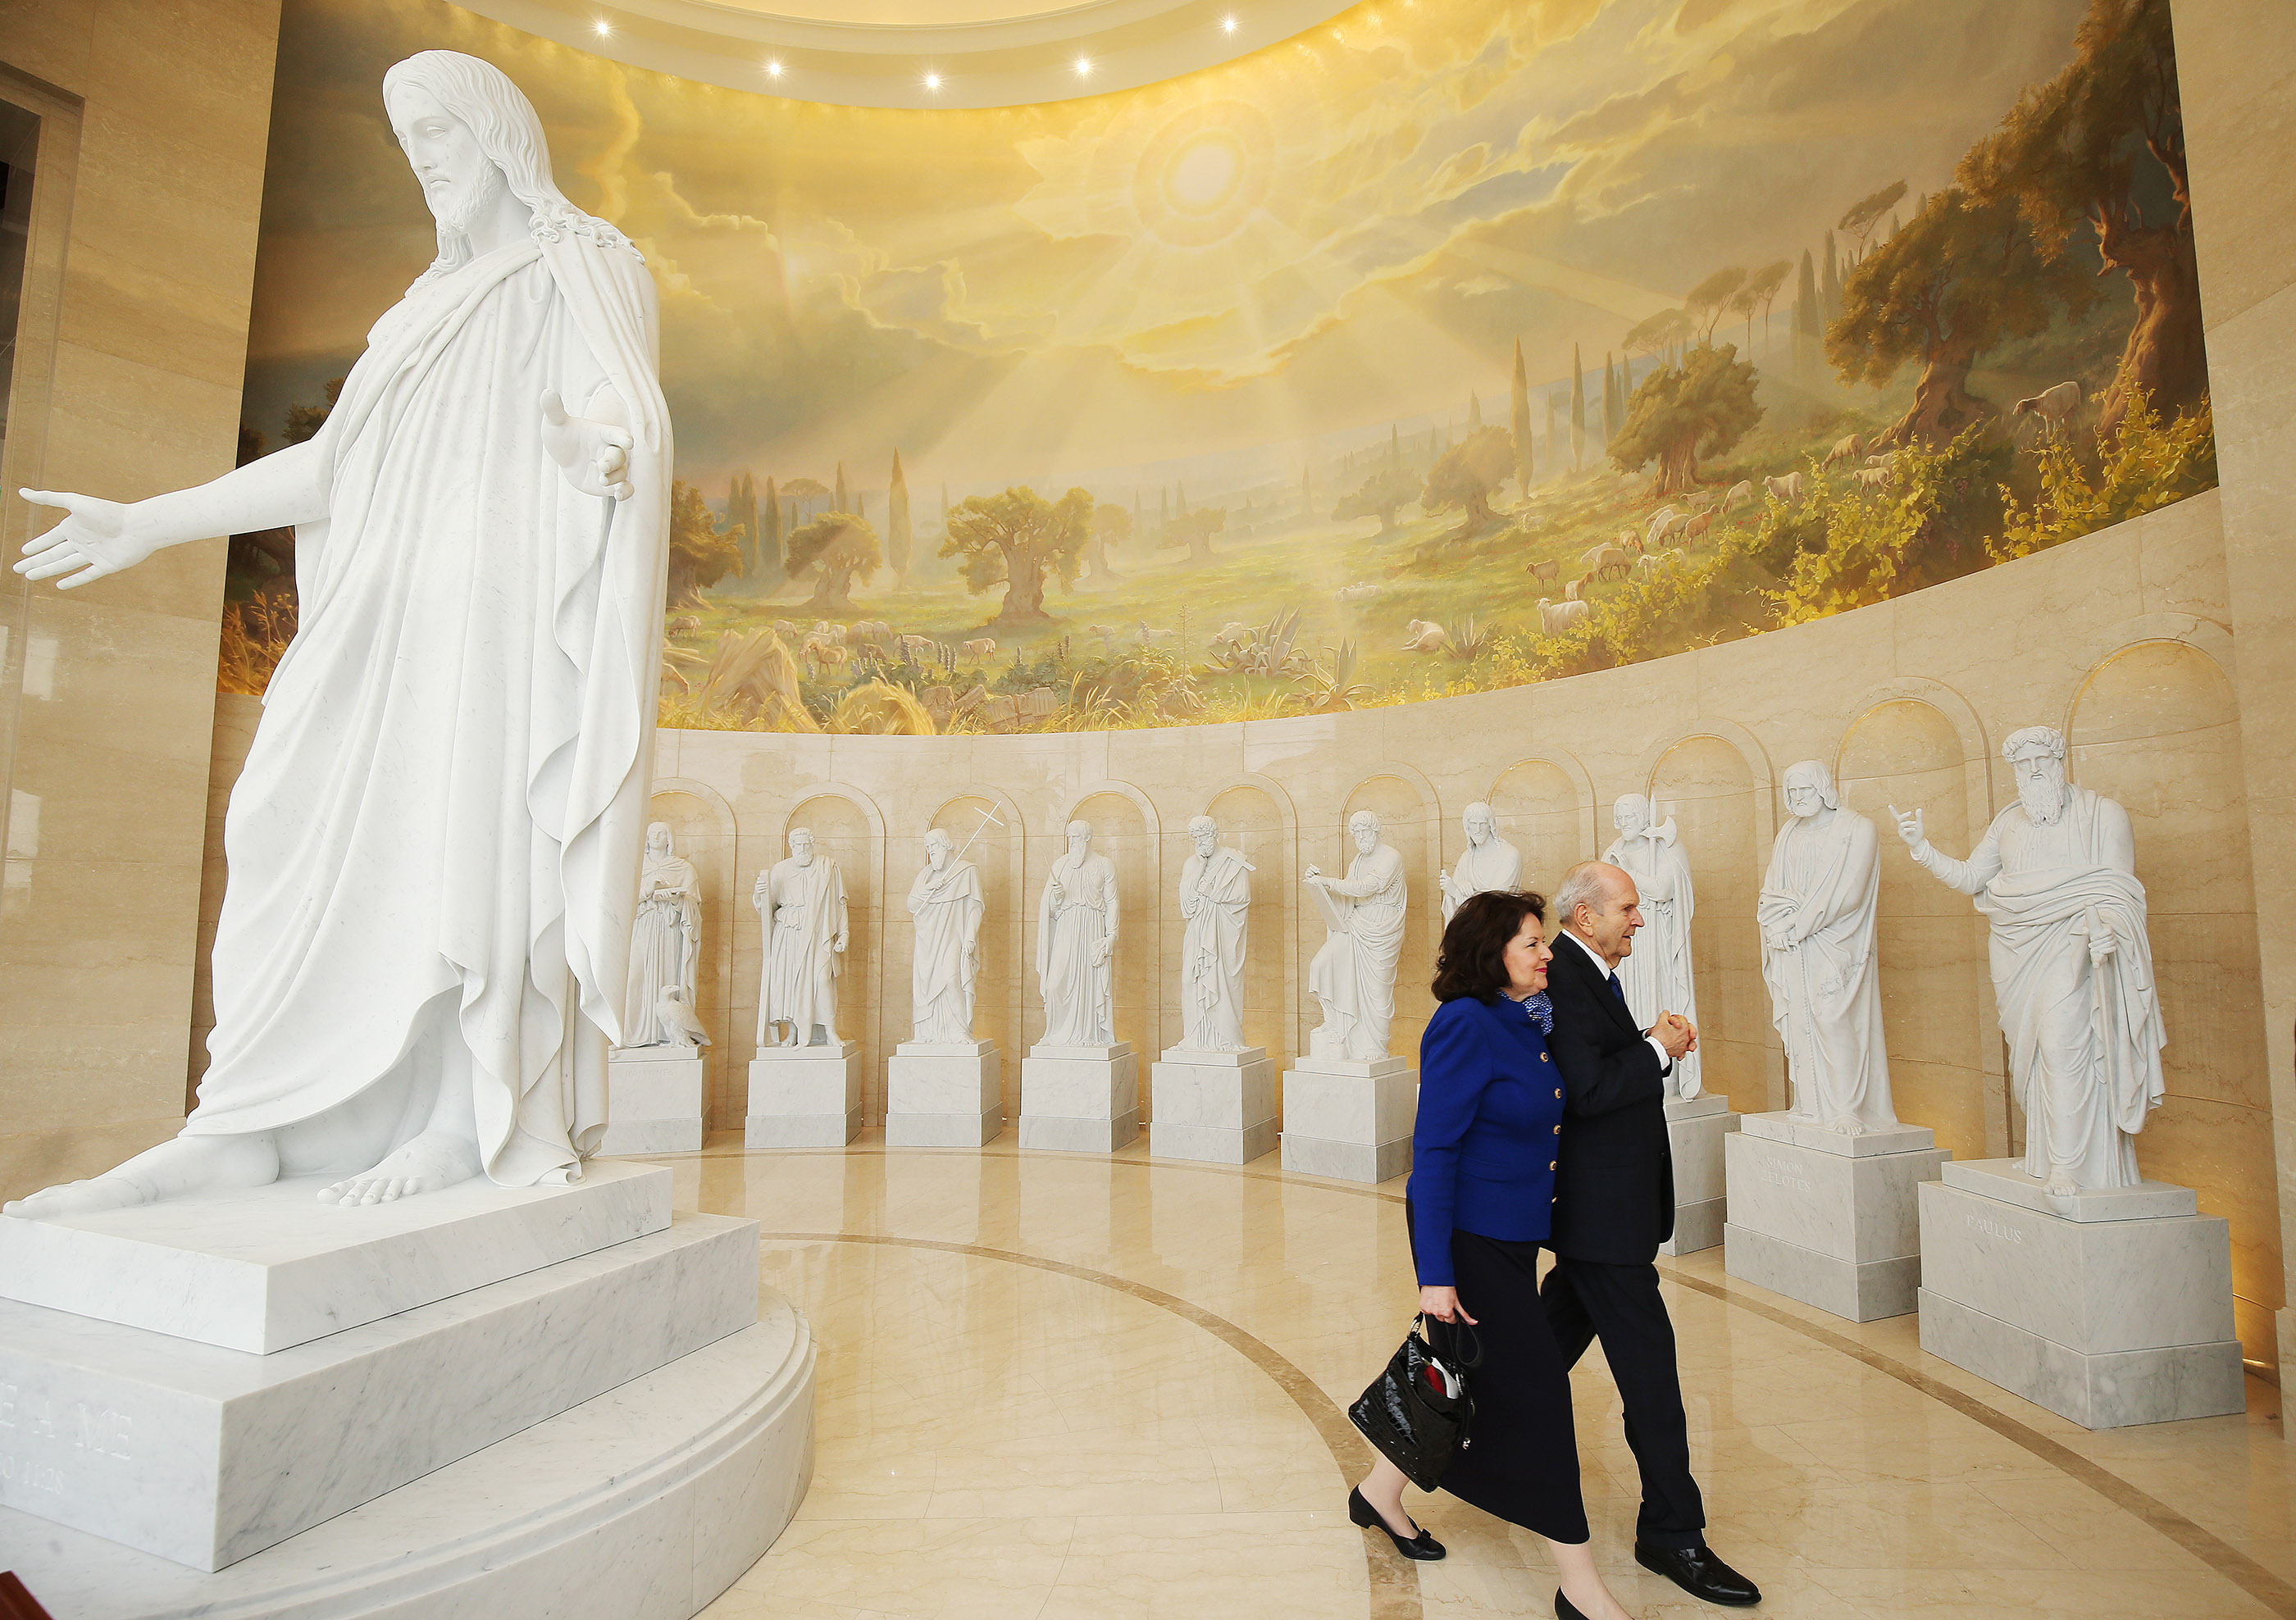 President Russell M. Nelson of The Church of Jesus Christ of Latter-day Saints walks with his wife Sister Wendy Nelson in the Rome Italy Temple visitors' center in Rome, Italy on Monday, March 11, 2019.